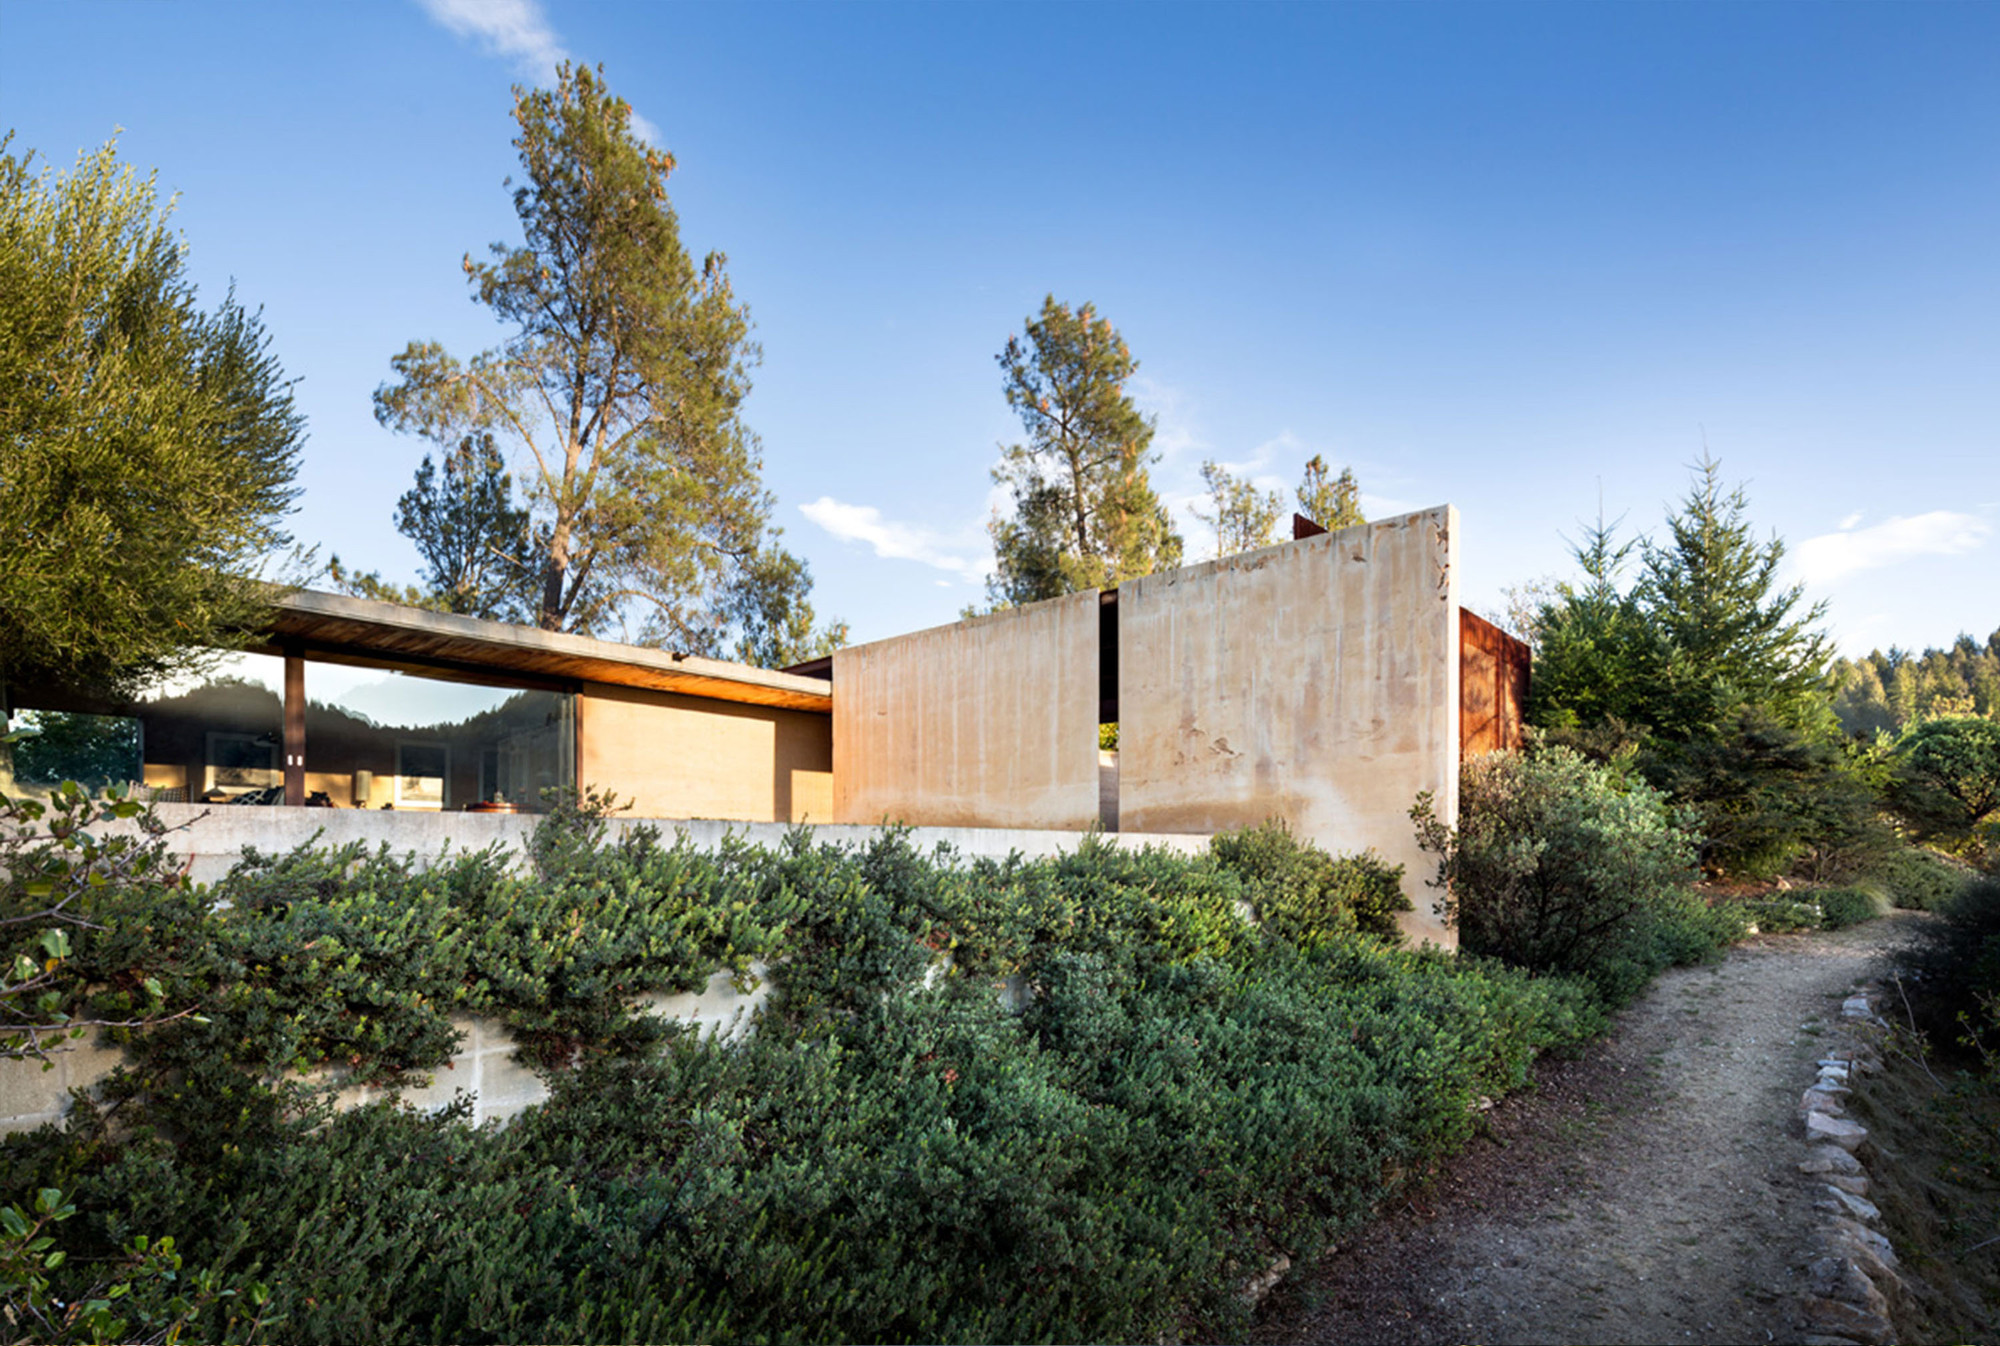 Napa Valley House / Steven Harris Architects, © Scott Frances/OTTO